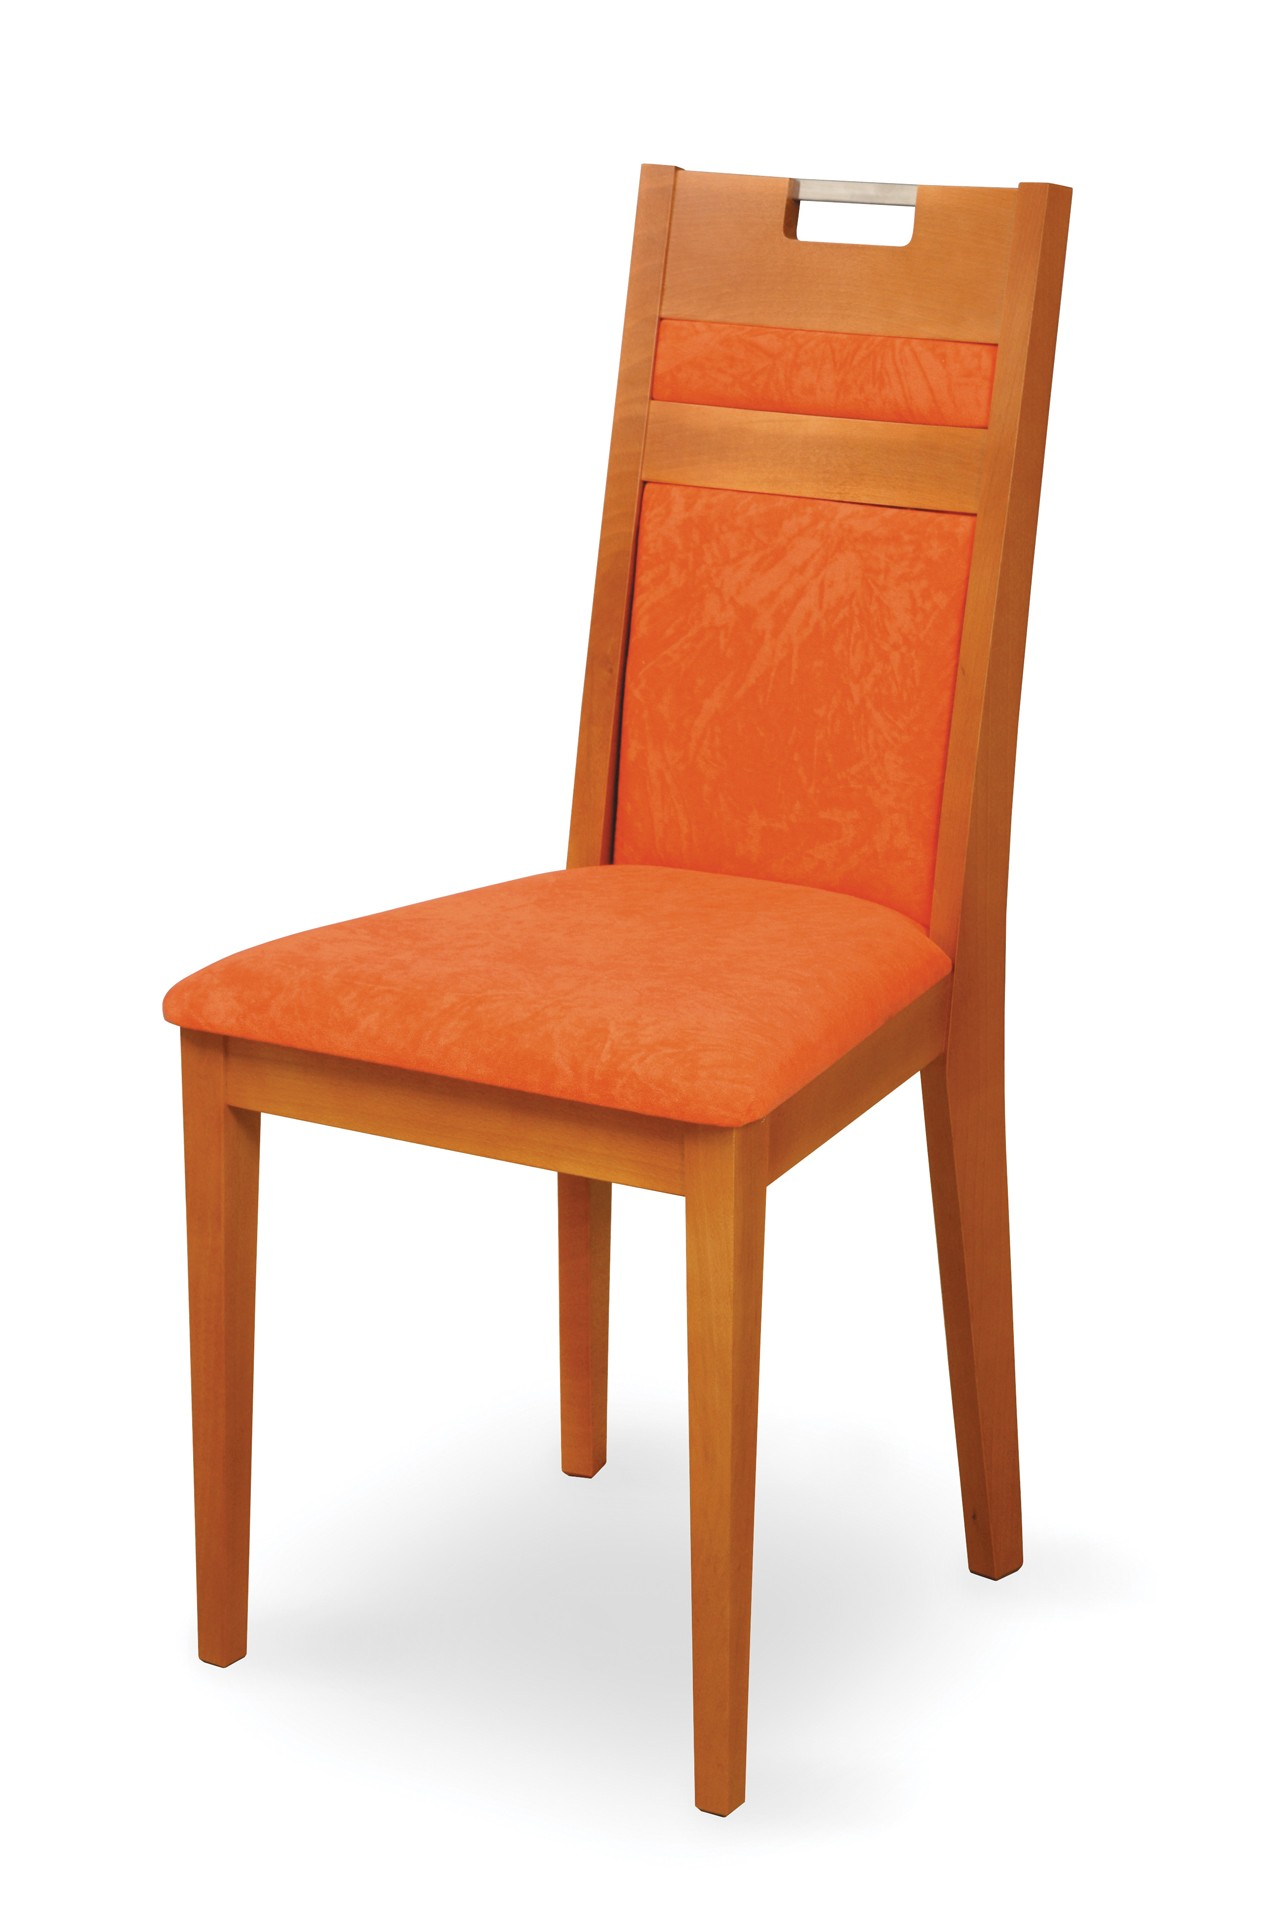 VENGE CHAIR wholly upholstered with handle